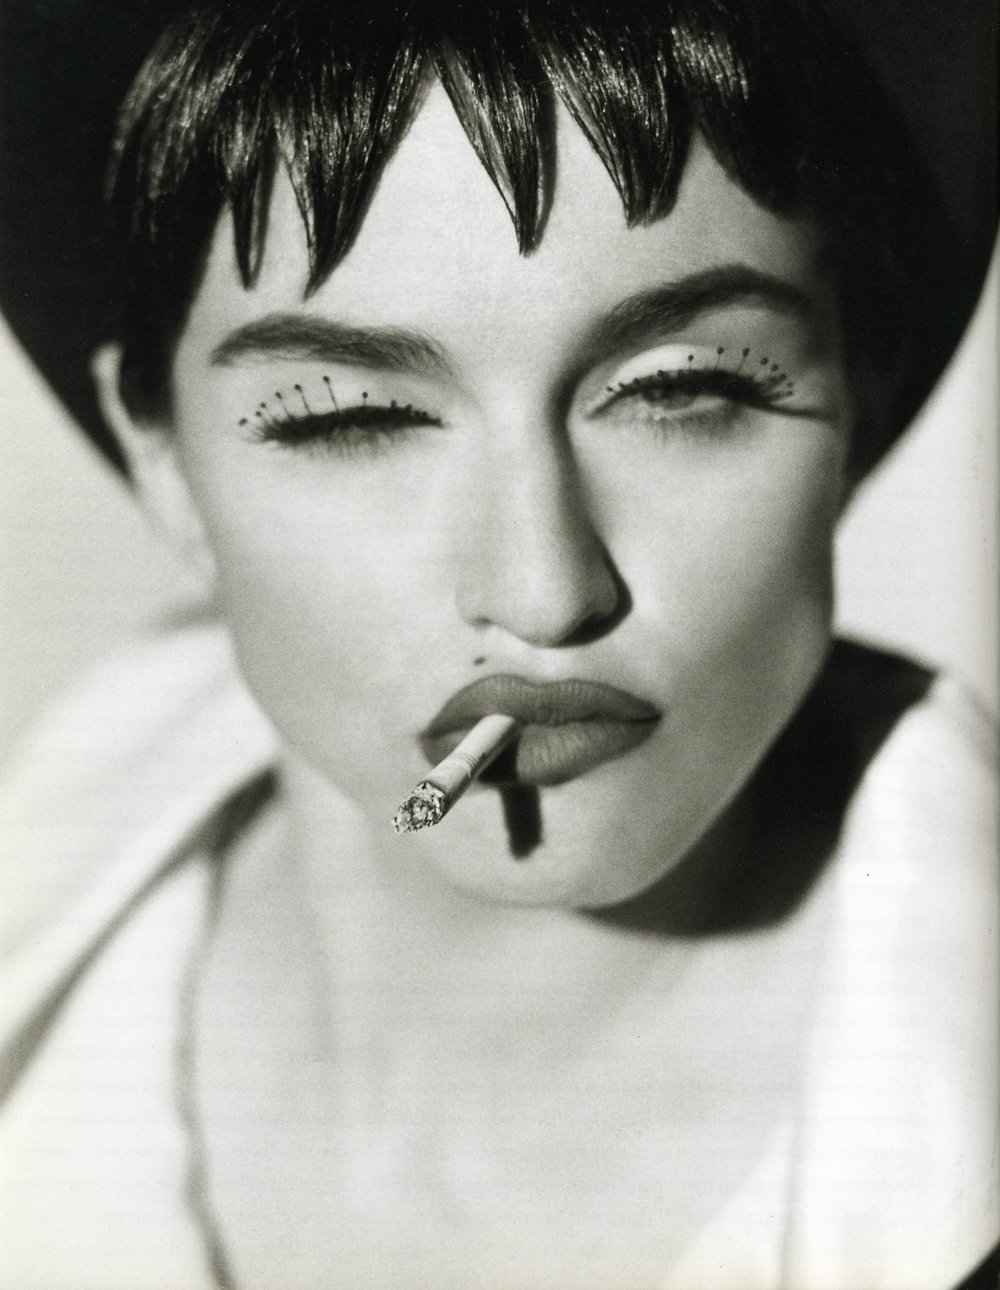 Madonna by Herb Ritts. Herb Ritts' photographs rely heavily on structure and form and other graphic qualities but he was also a master of interpreting and portraying the 'human intangible element'.